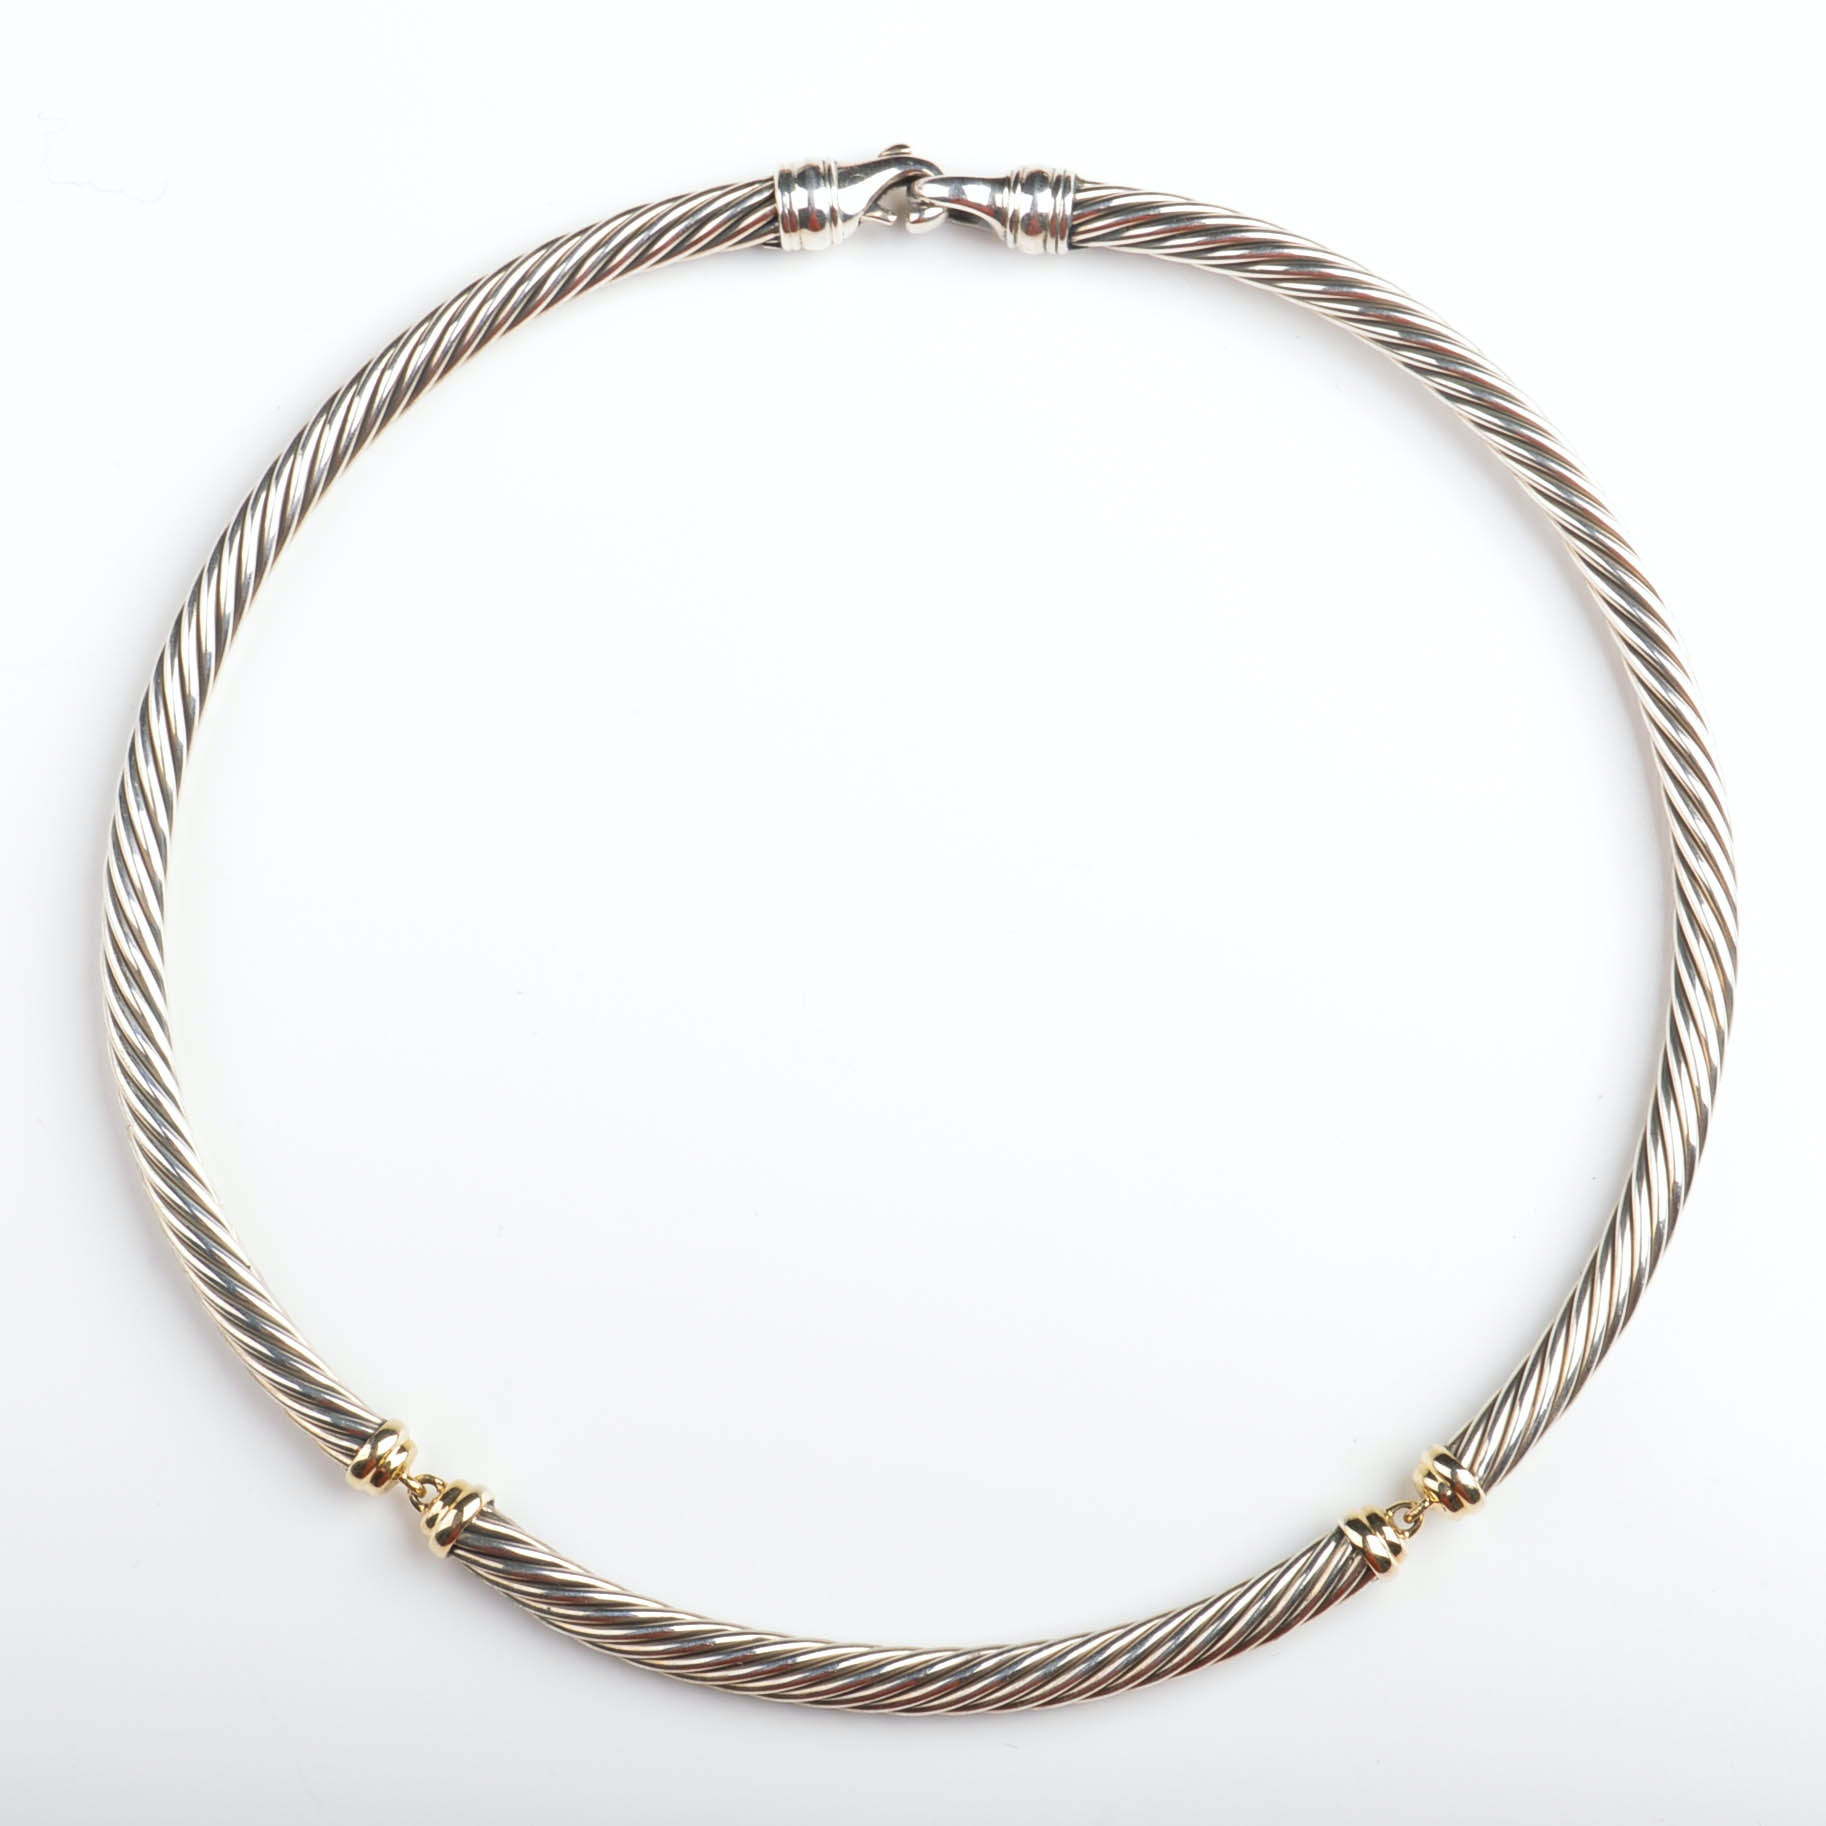 David Yurman Sterling Silver and 14K Yellow Gold Cable Necklace